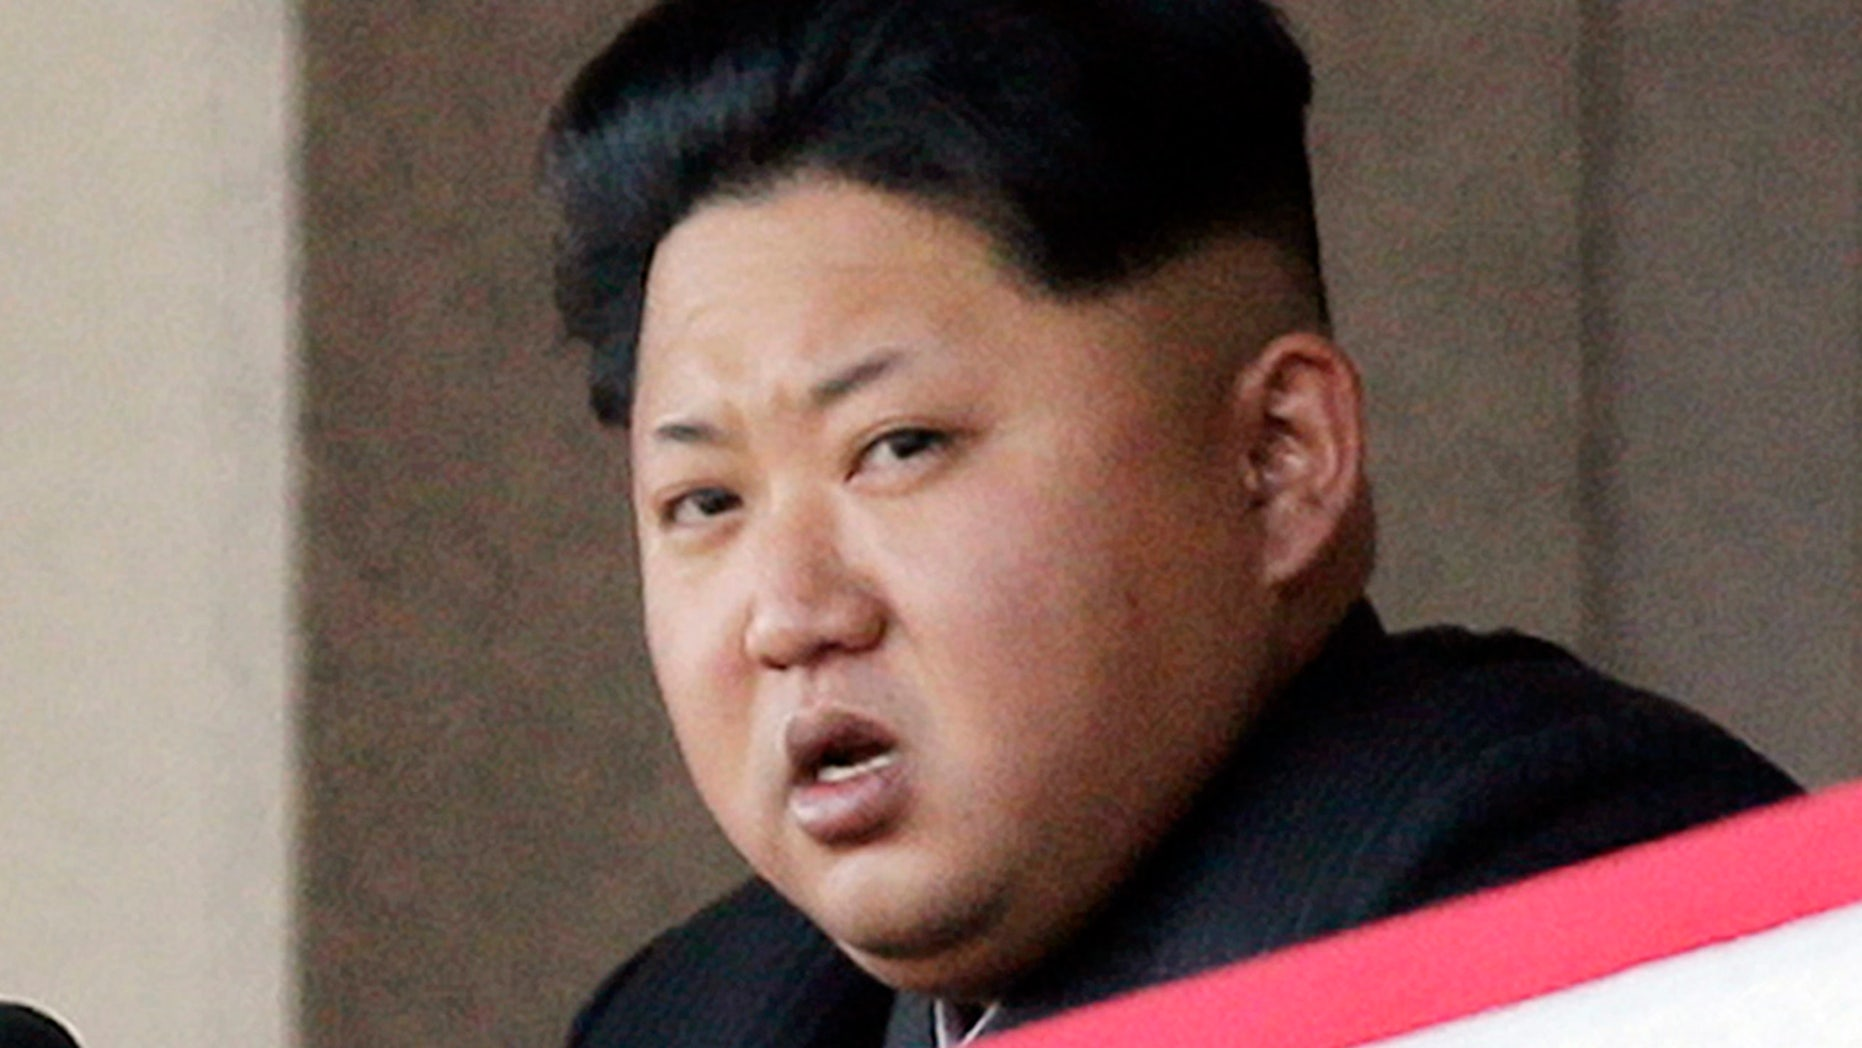 FILE - In this Oct. 10, 2015, file photo, North Korean leader Kim Jong Un delivers remarks at a military parade in Pyongyang, North Korea. Kim has warned of impending tests of a nuclear warhead explosion and ballistic missiles capable of carrying atomic warheads, state media reported Tuesday, March 15, 2016, in an escalation of threats against Seoul and Washington. (AP Photo/Wong Maye-E, File)